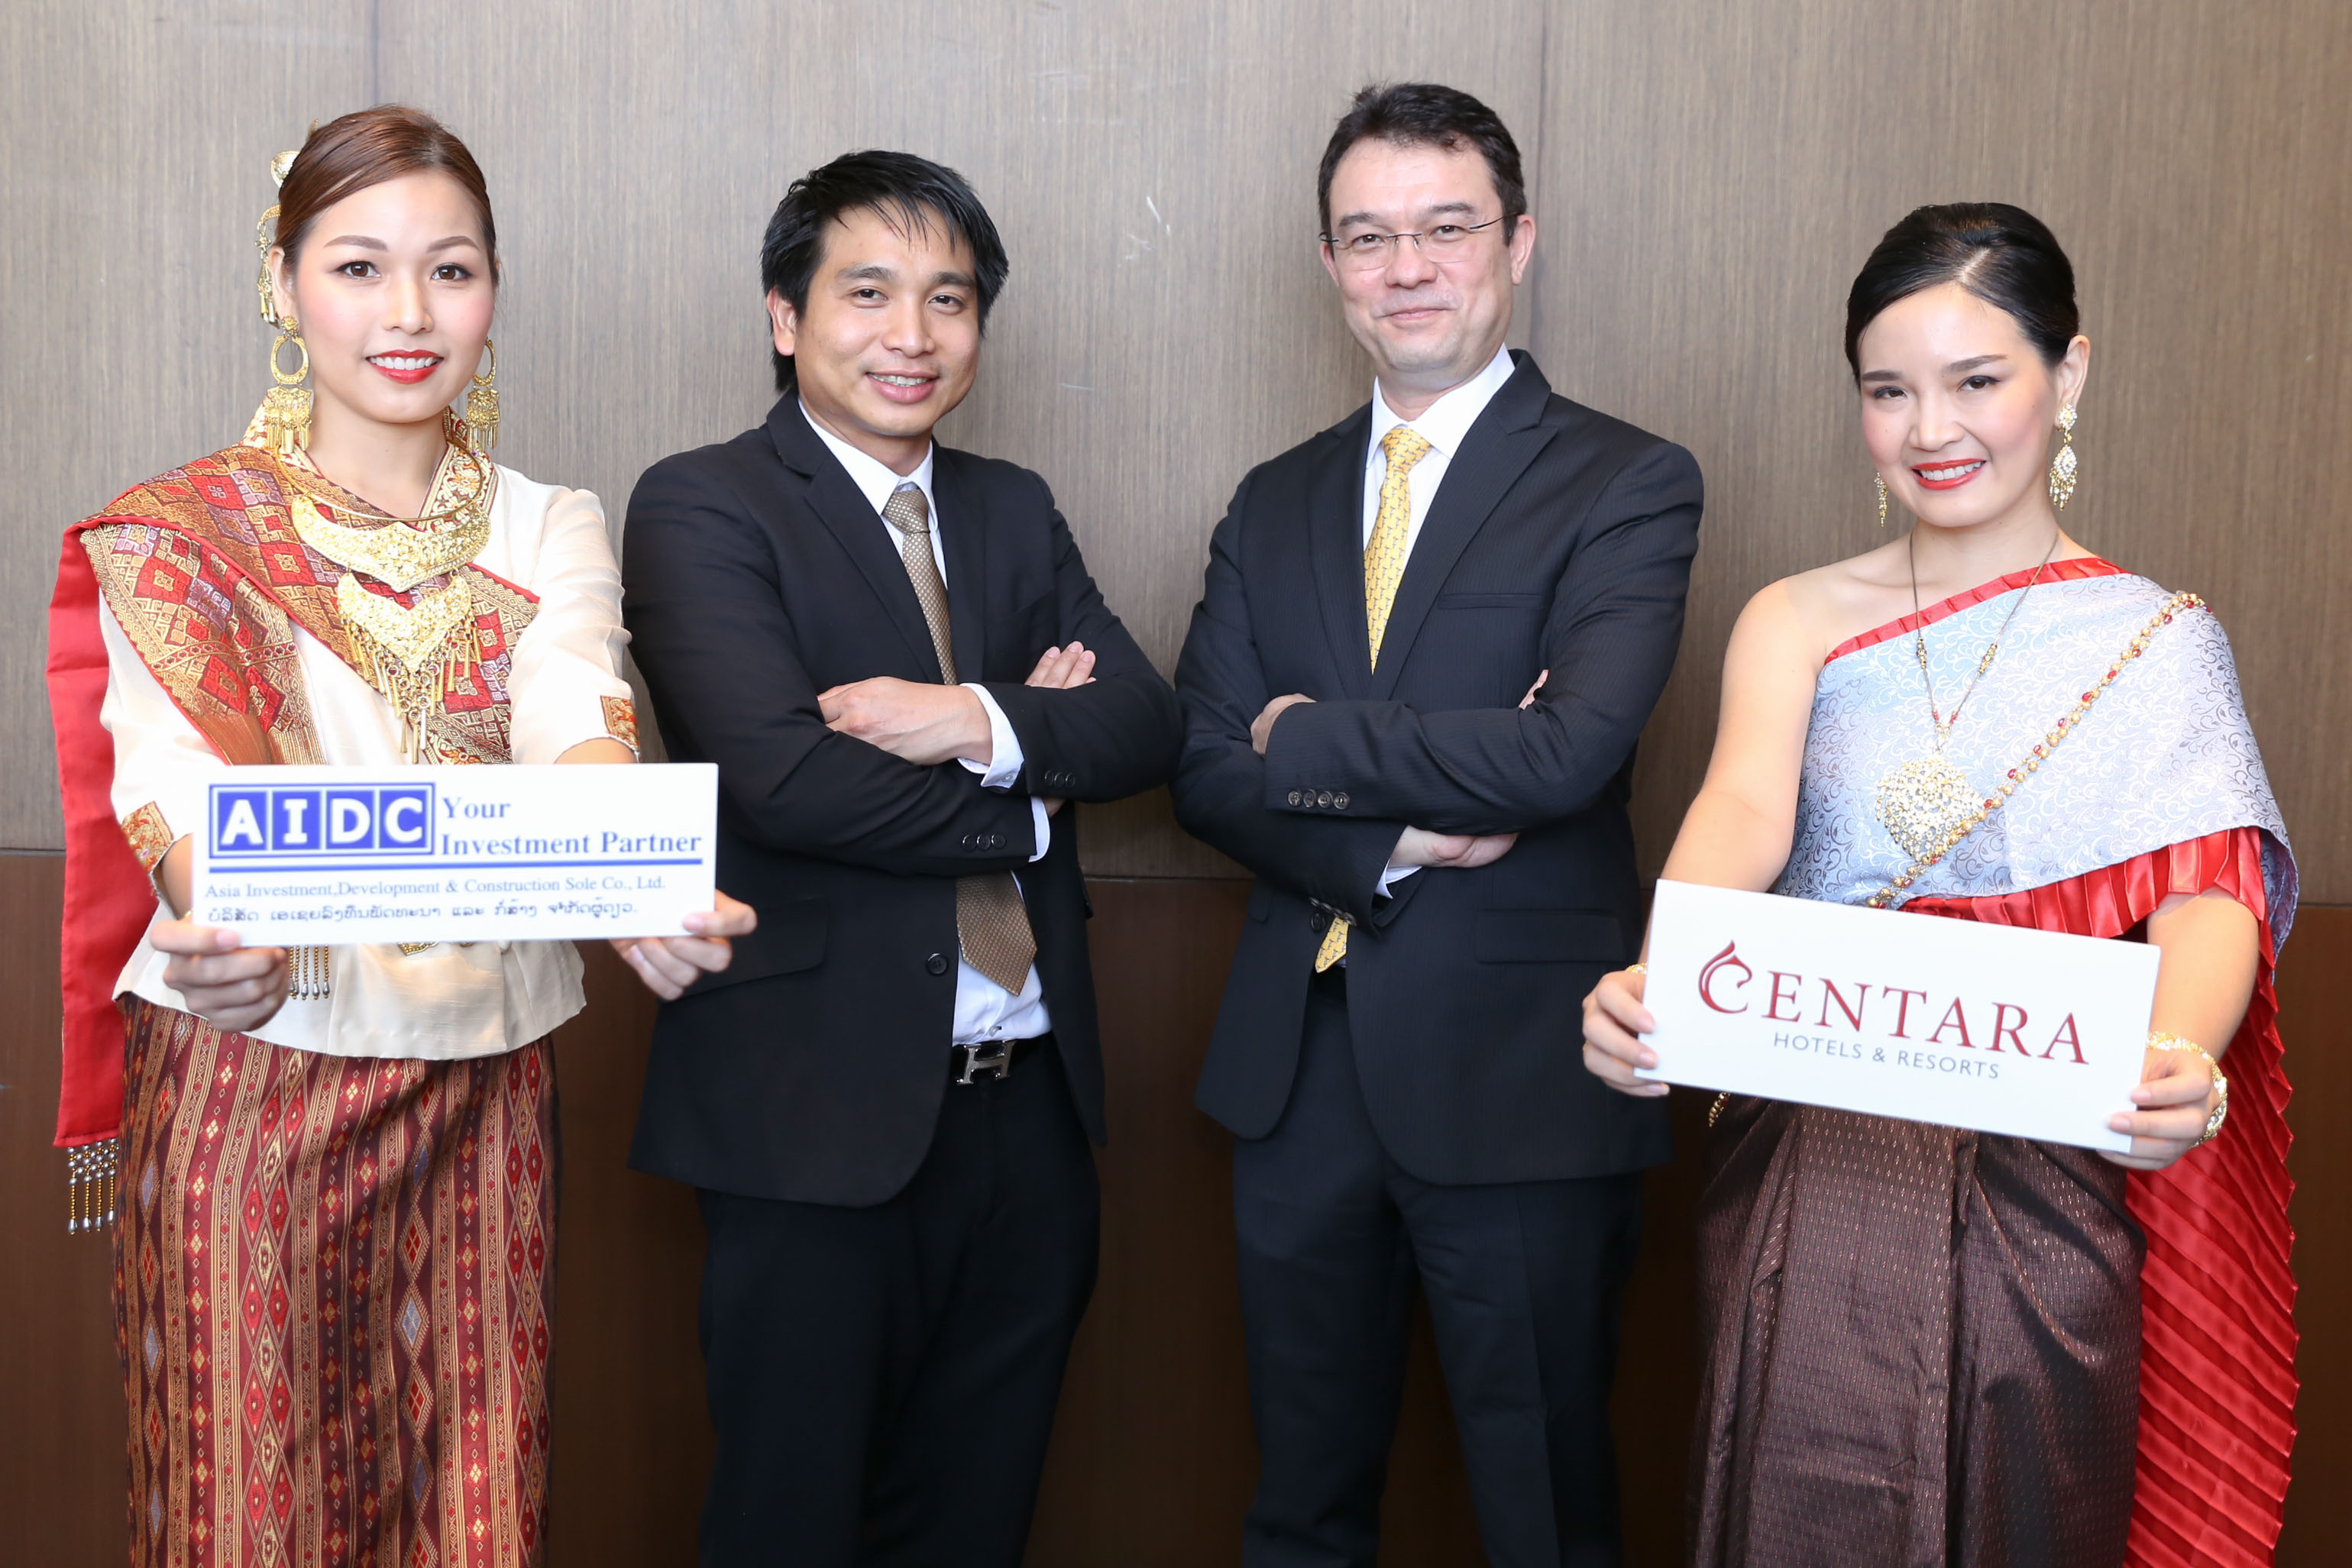 Centara-slacht-management-deal-yn-Laos